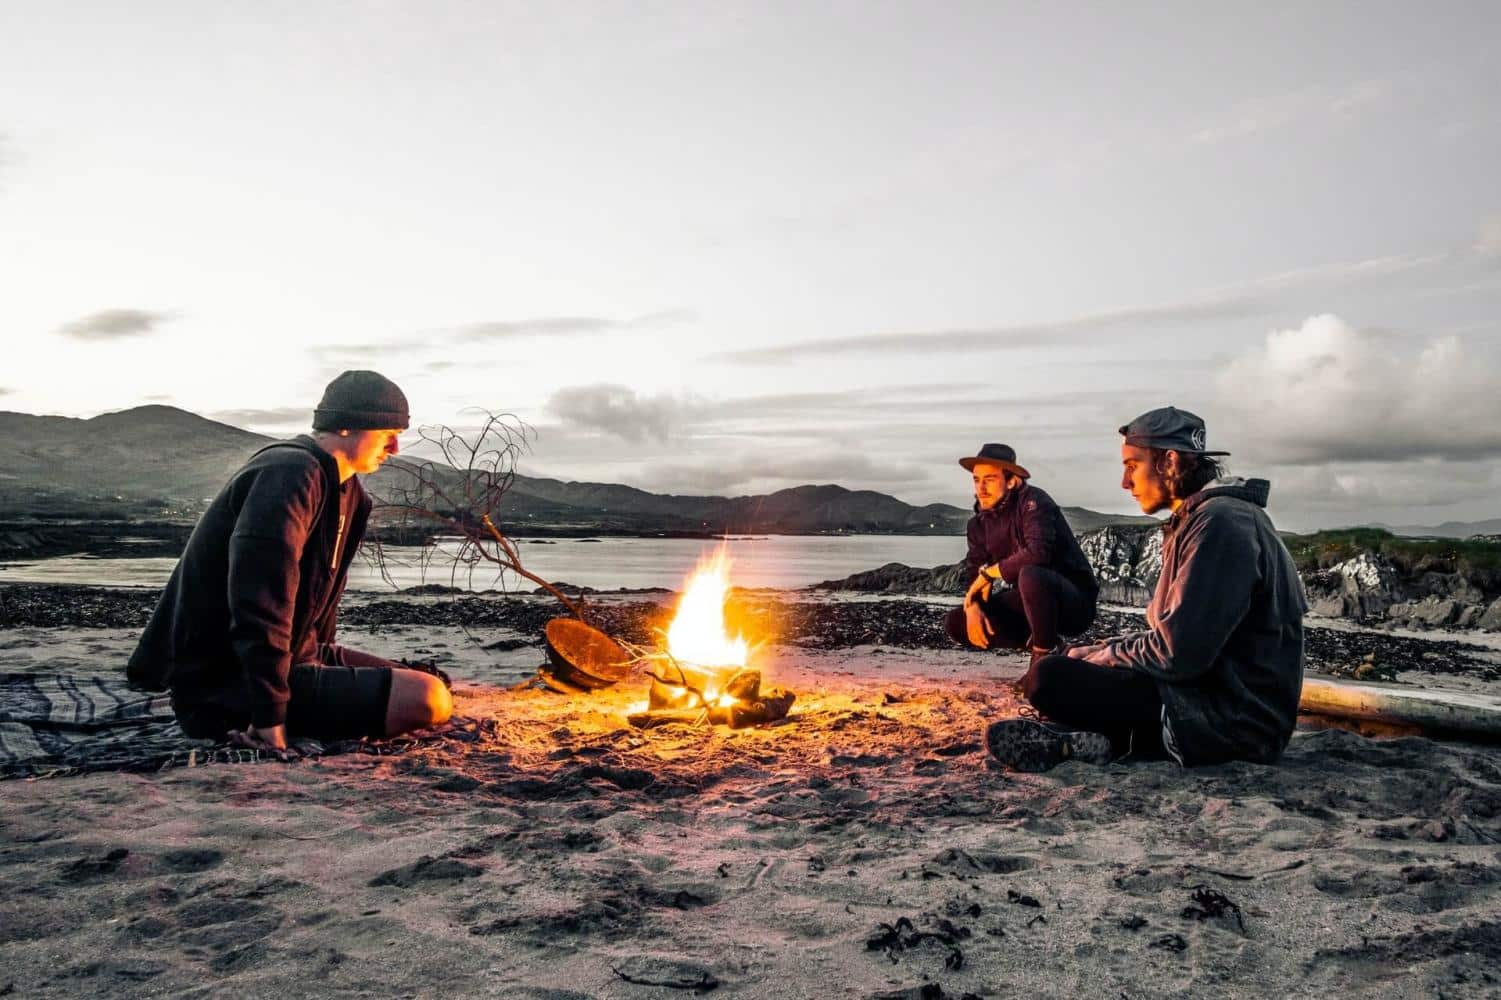 Three people around a campfire